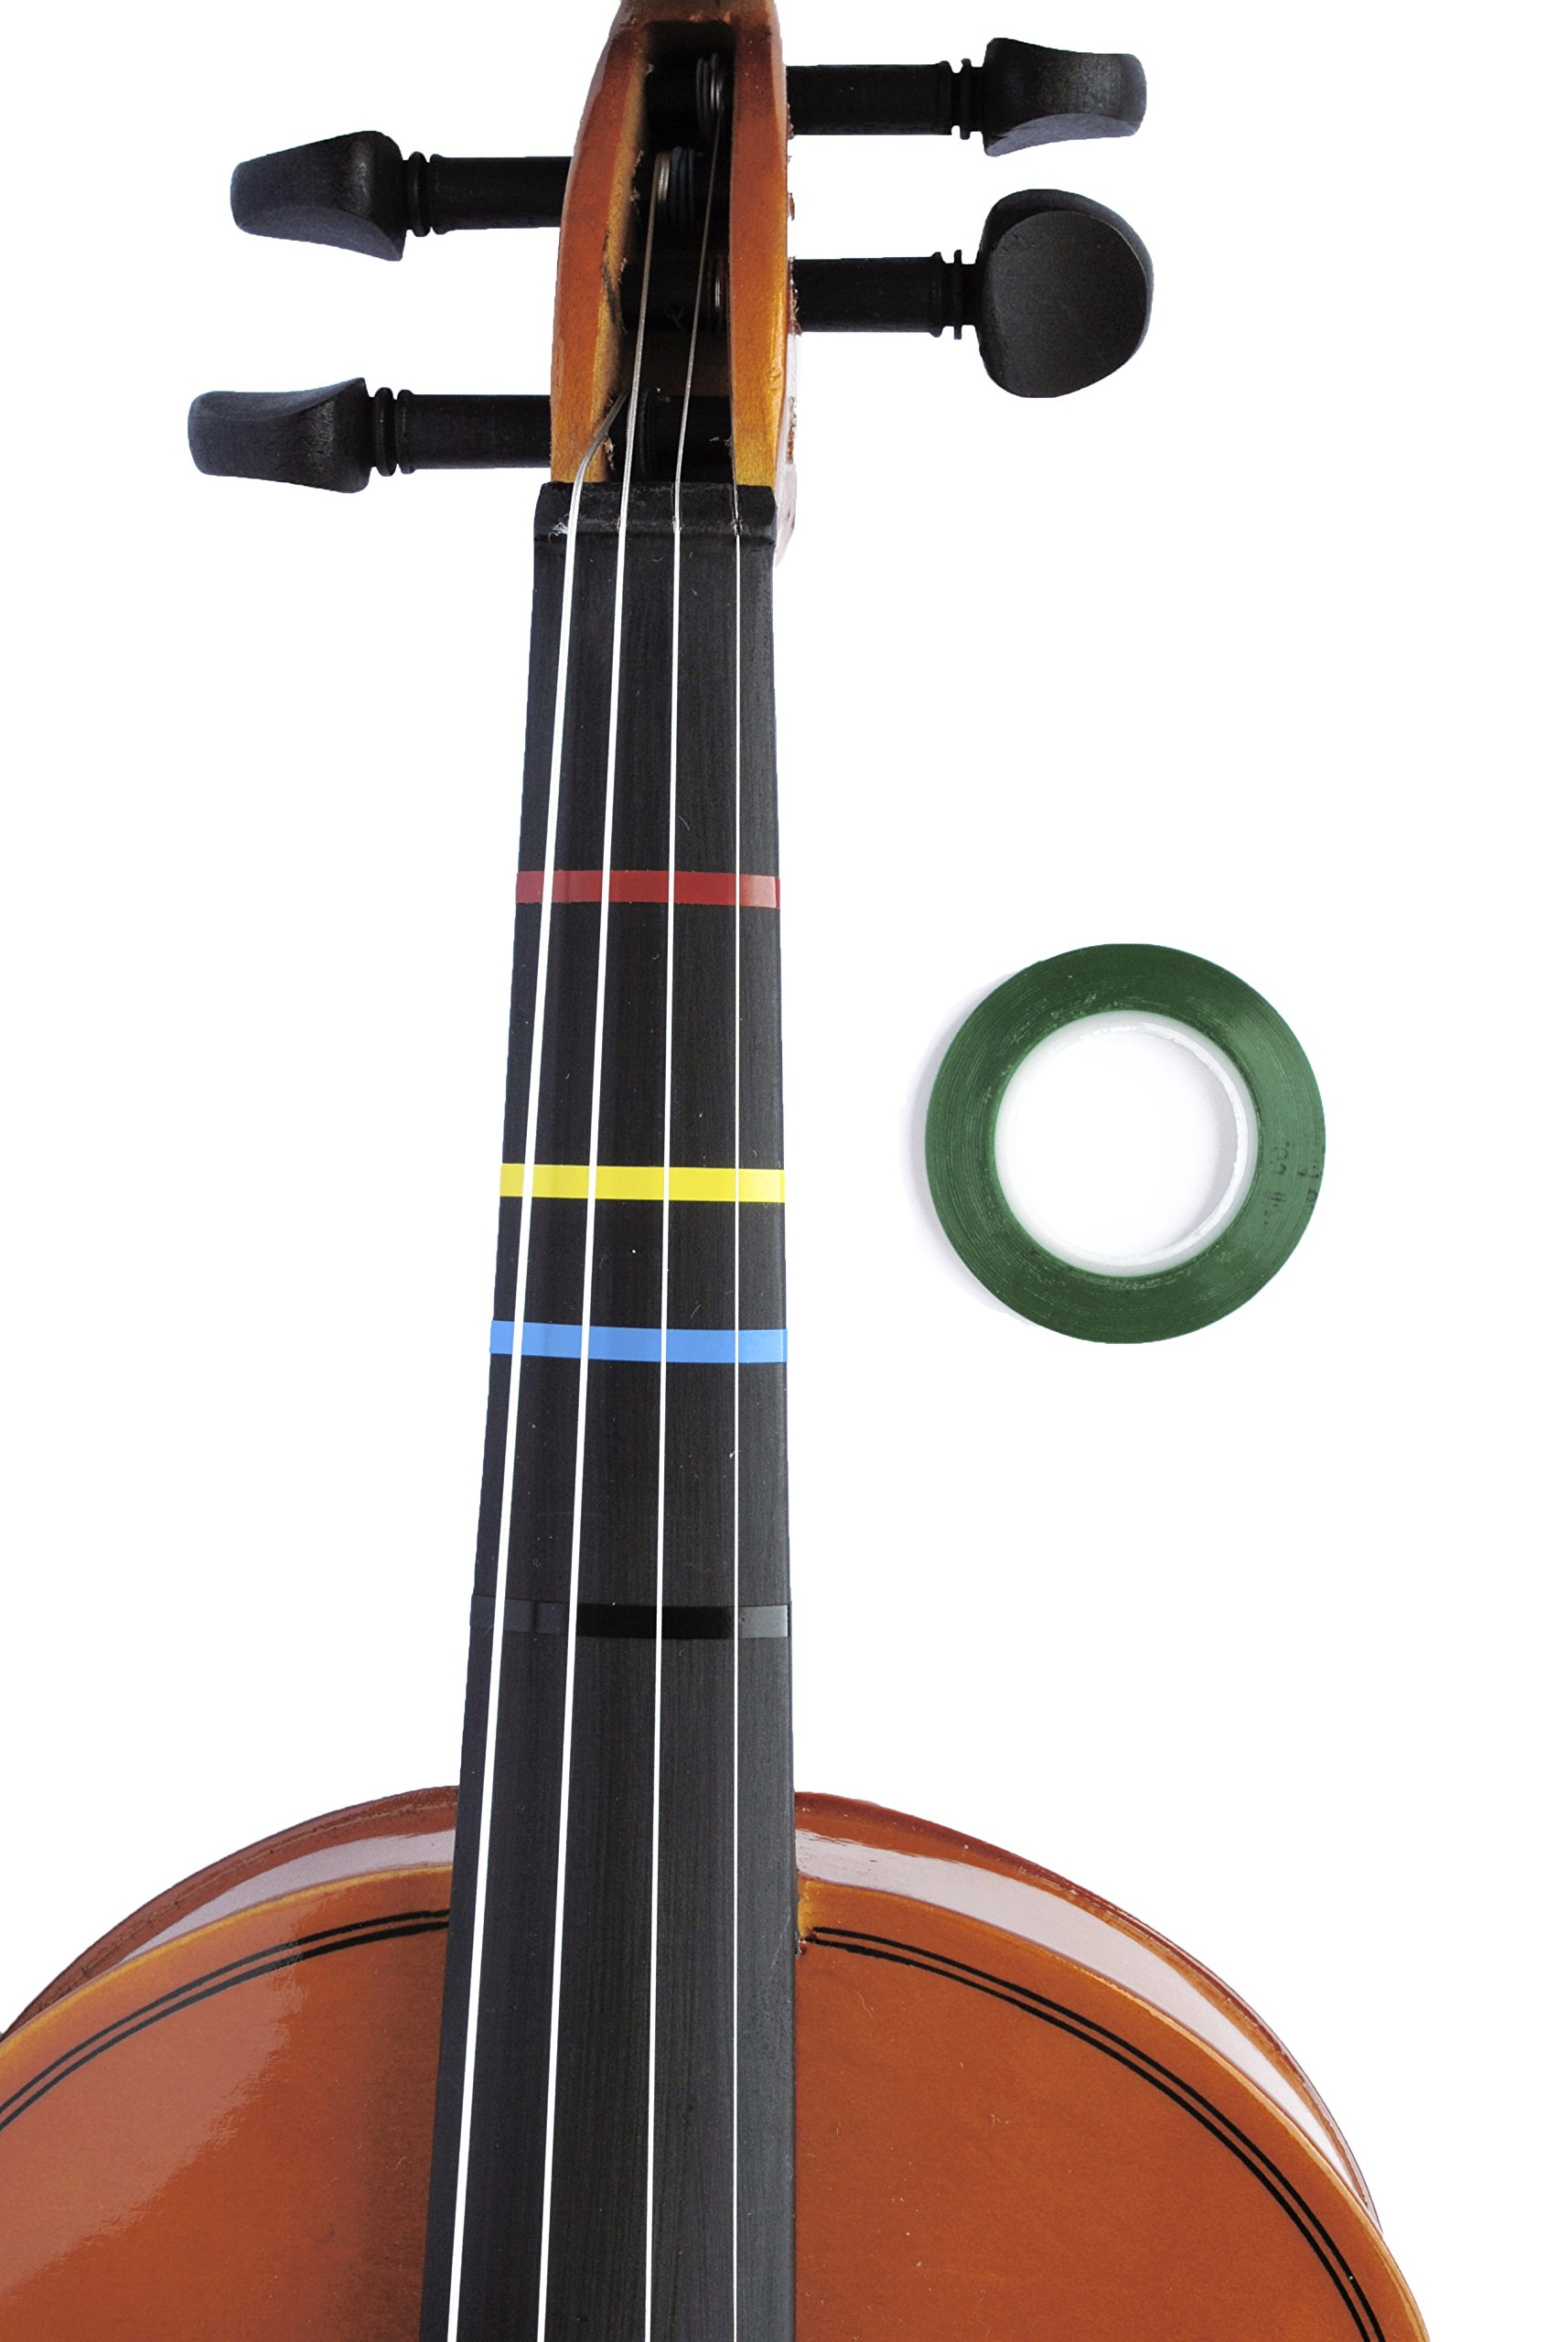 Jumbo GREEN Color Violin Fingering Tape for Fretboard Note Positions